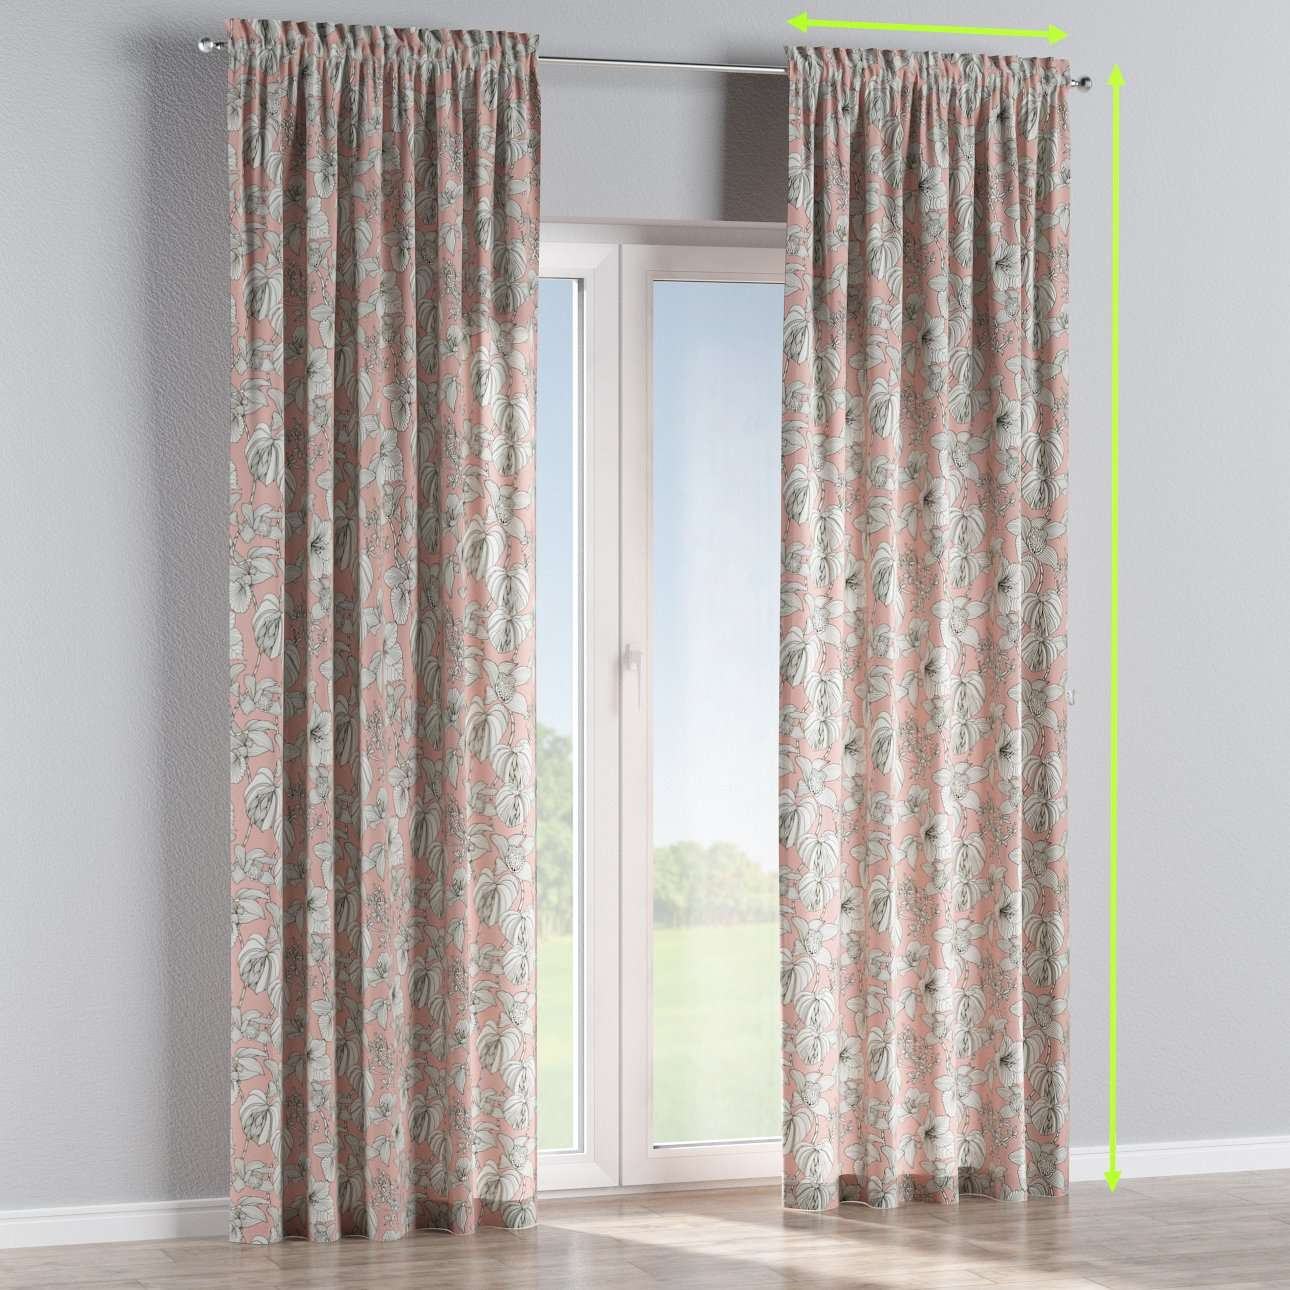 Slot and frill lined curtains in collection Brooklyn, fabric: 137-74